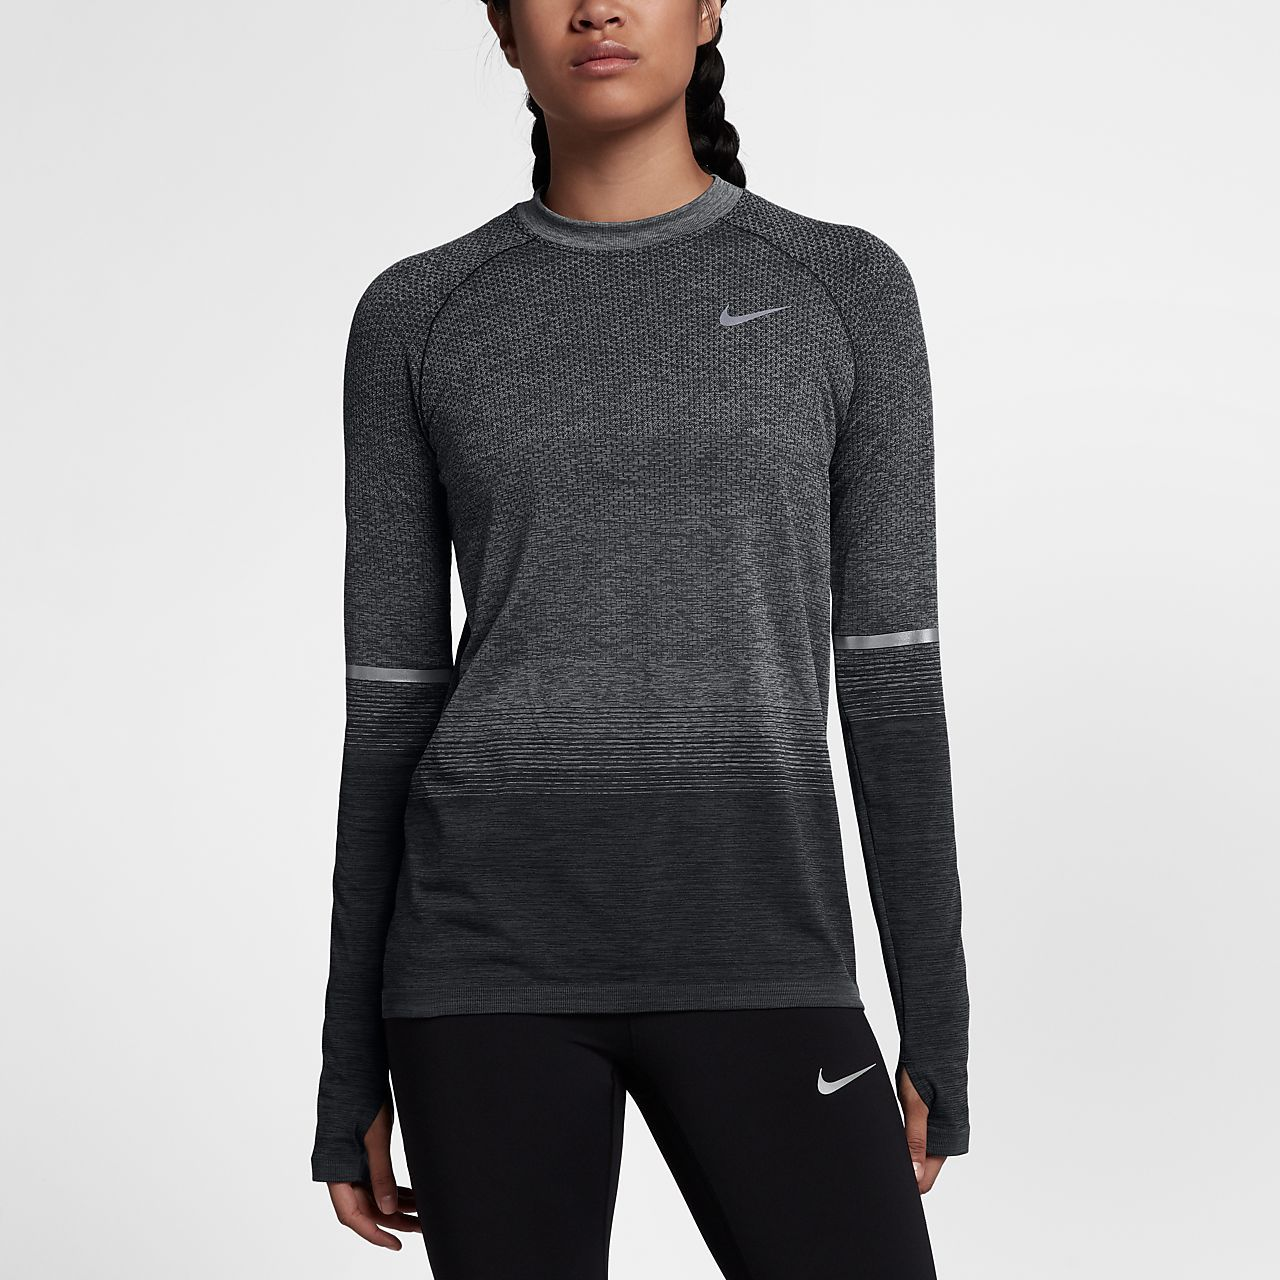 535ef297d28c53 Nike Dri-FIT Knit Women's Long Sleeve Running Top - small | Golf ...